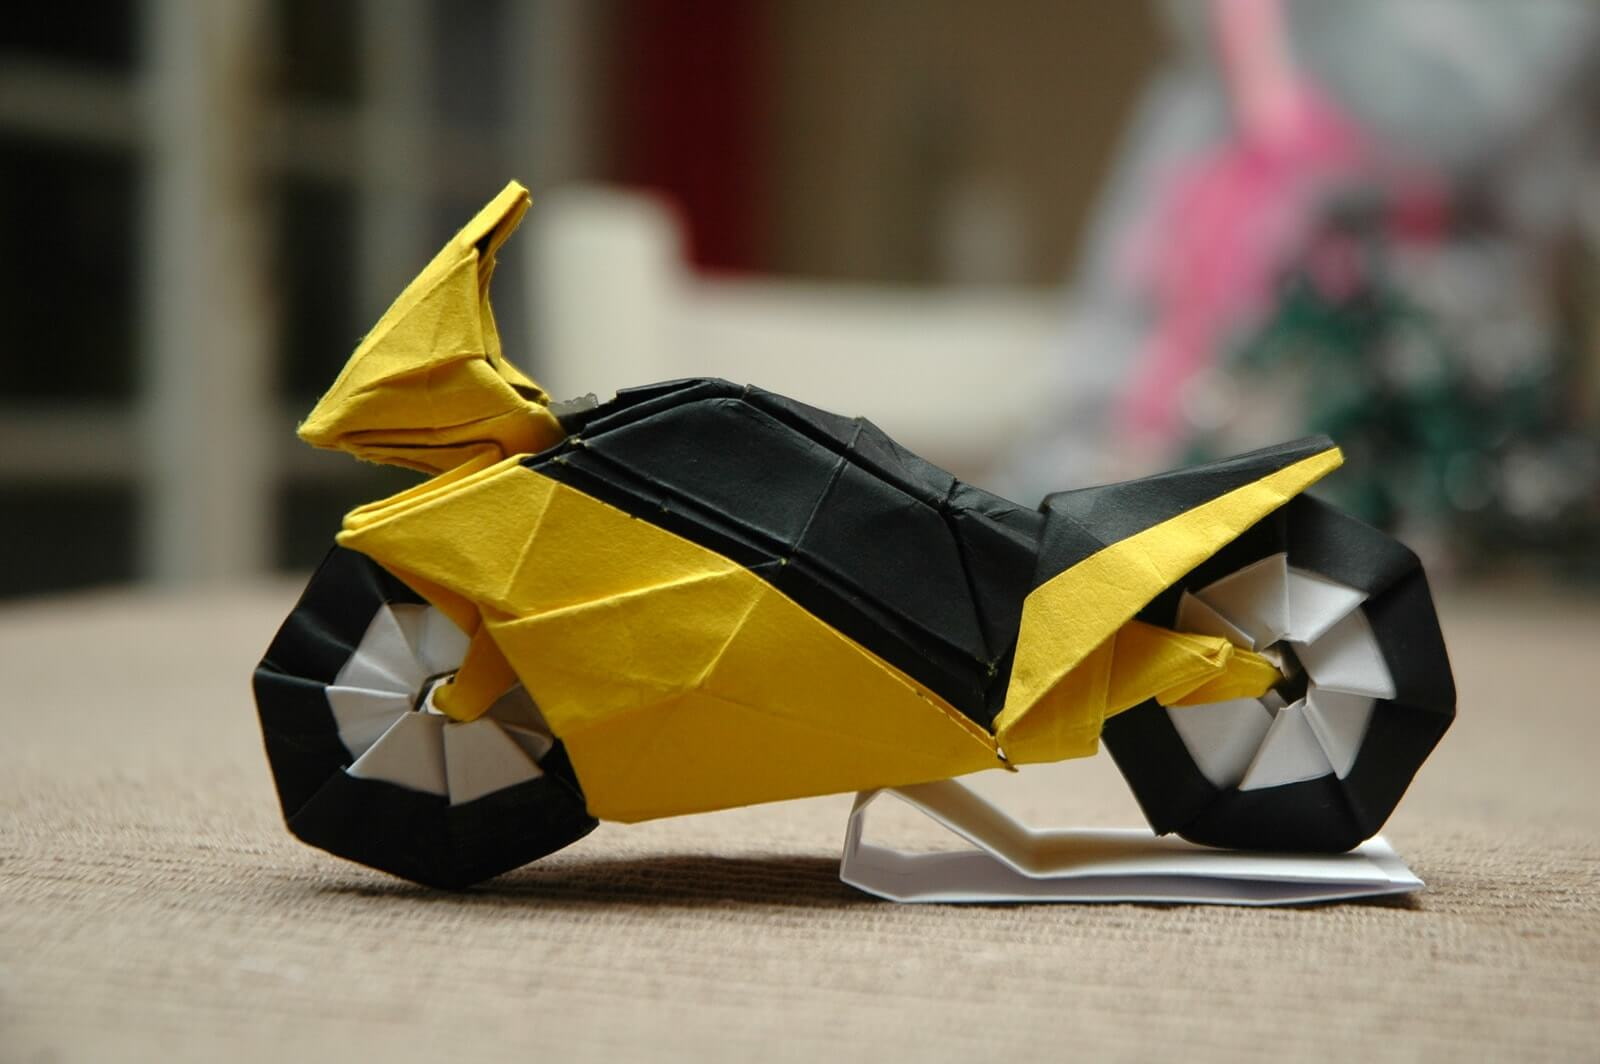 Origami Bike by Ryo Aoki